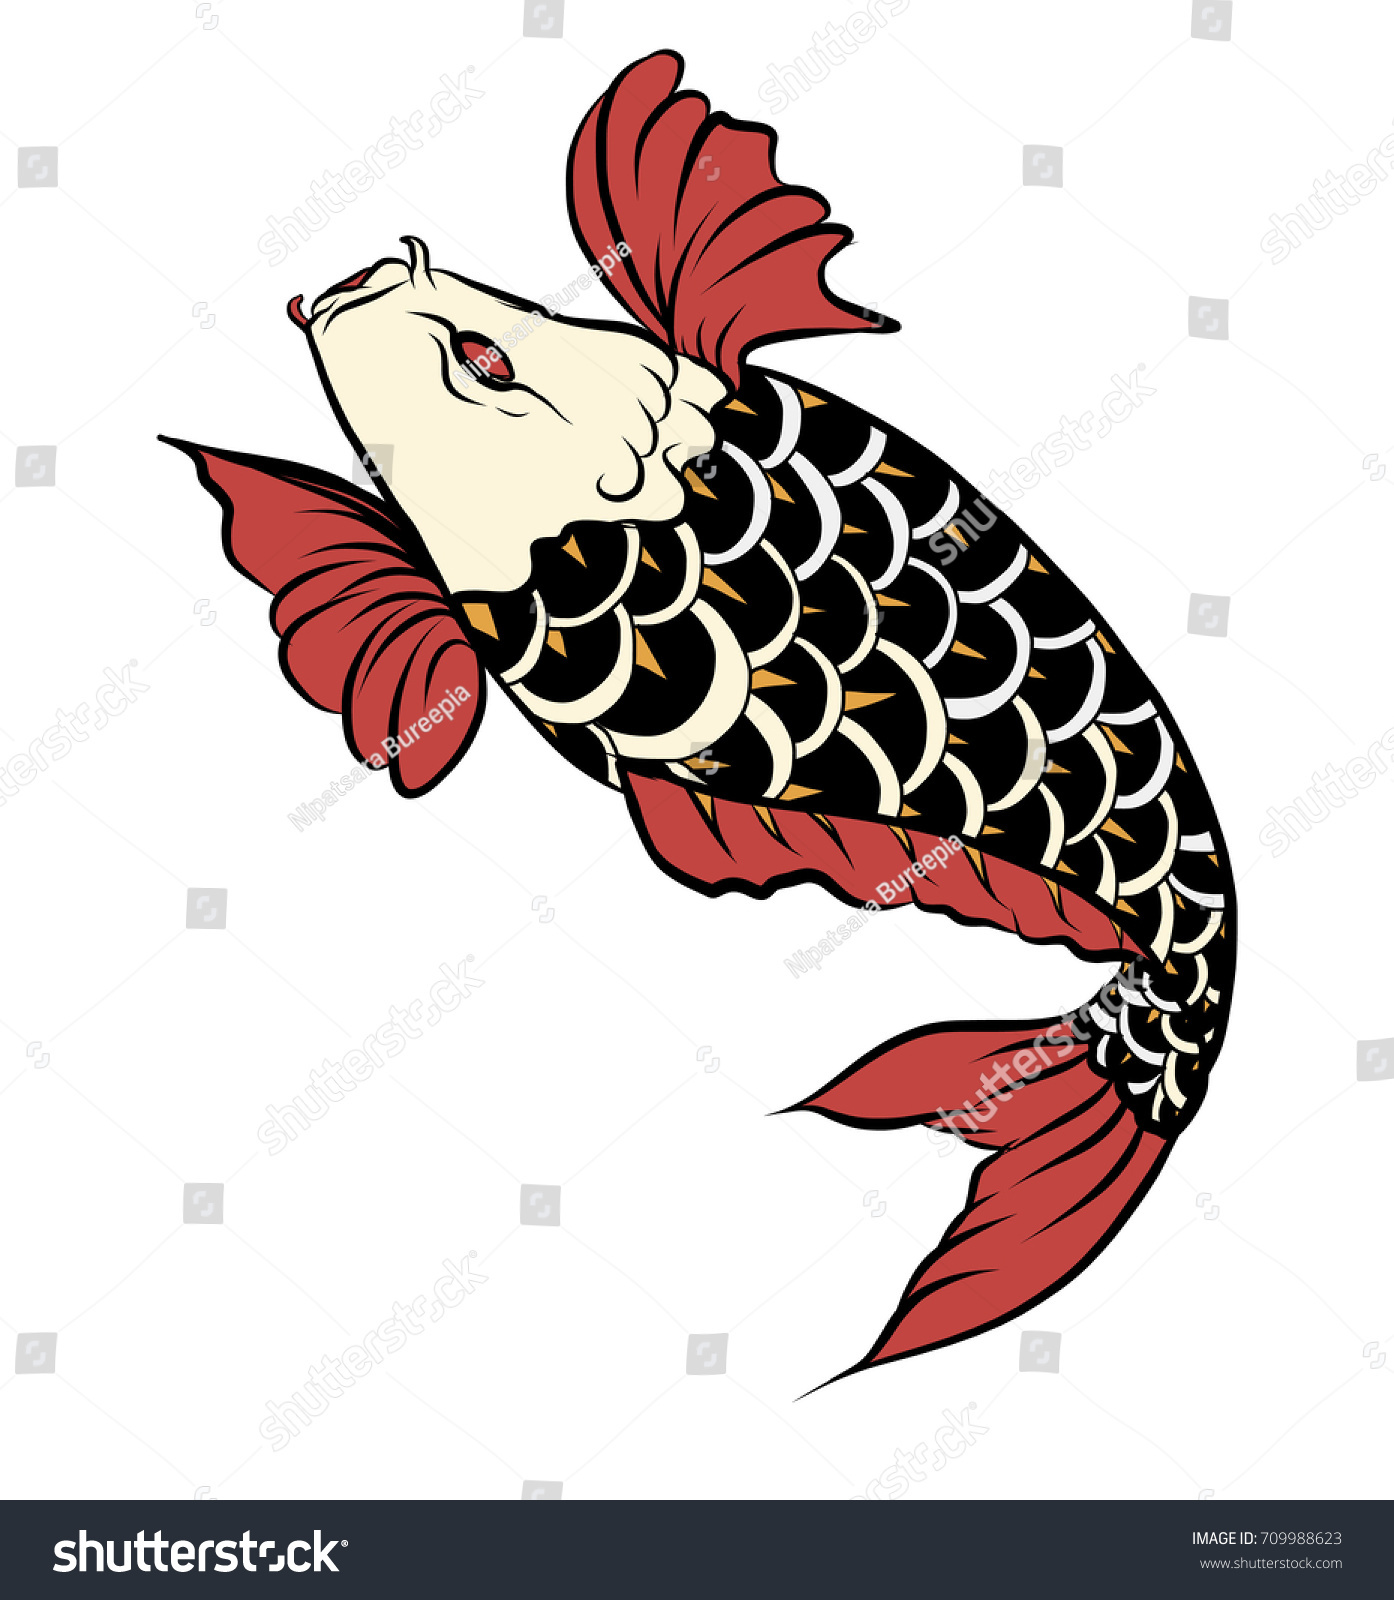 Hand Drawn Colorful Koi Fish Water Stock Vector 709988623 - Shutterstock